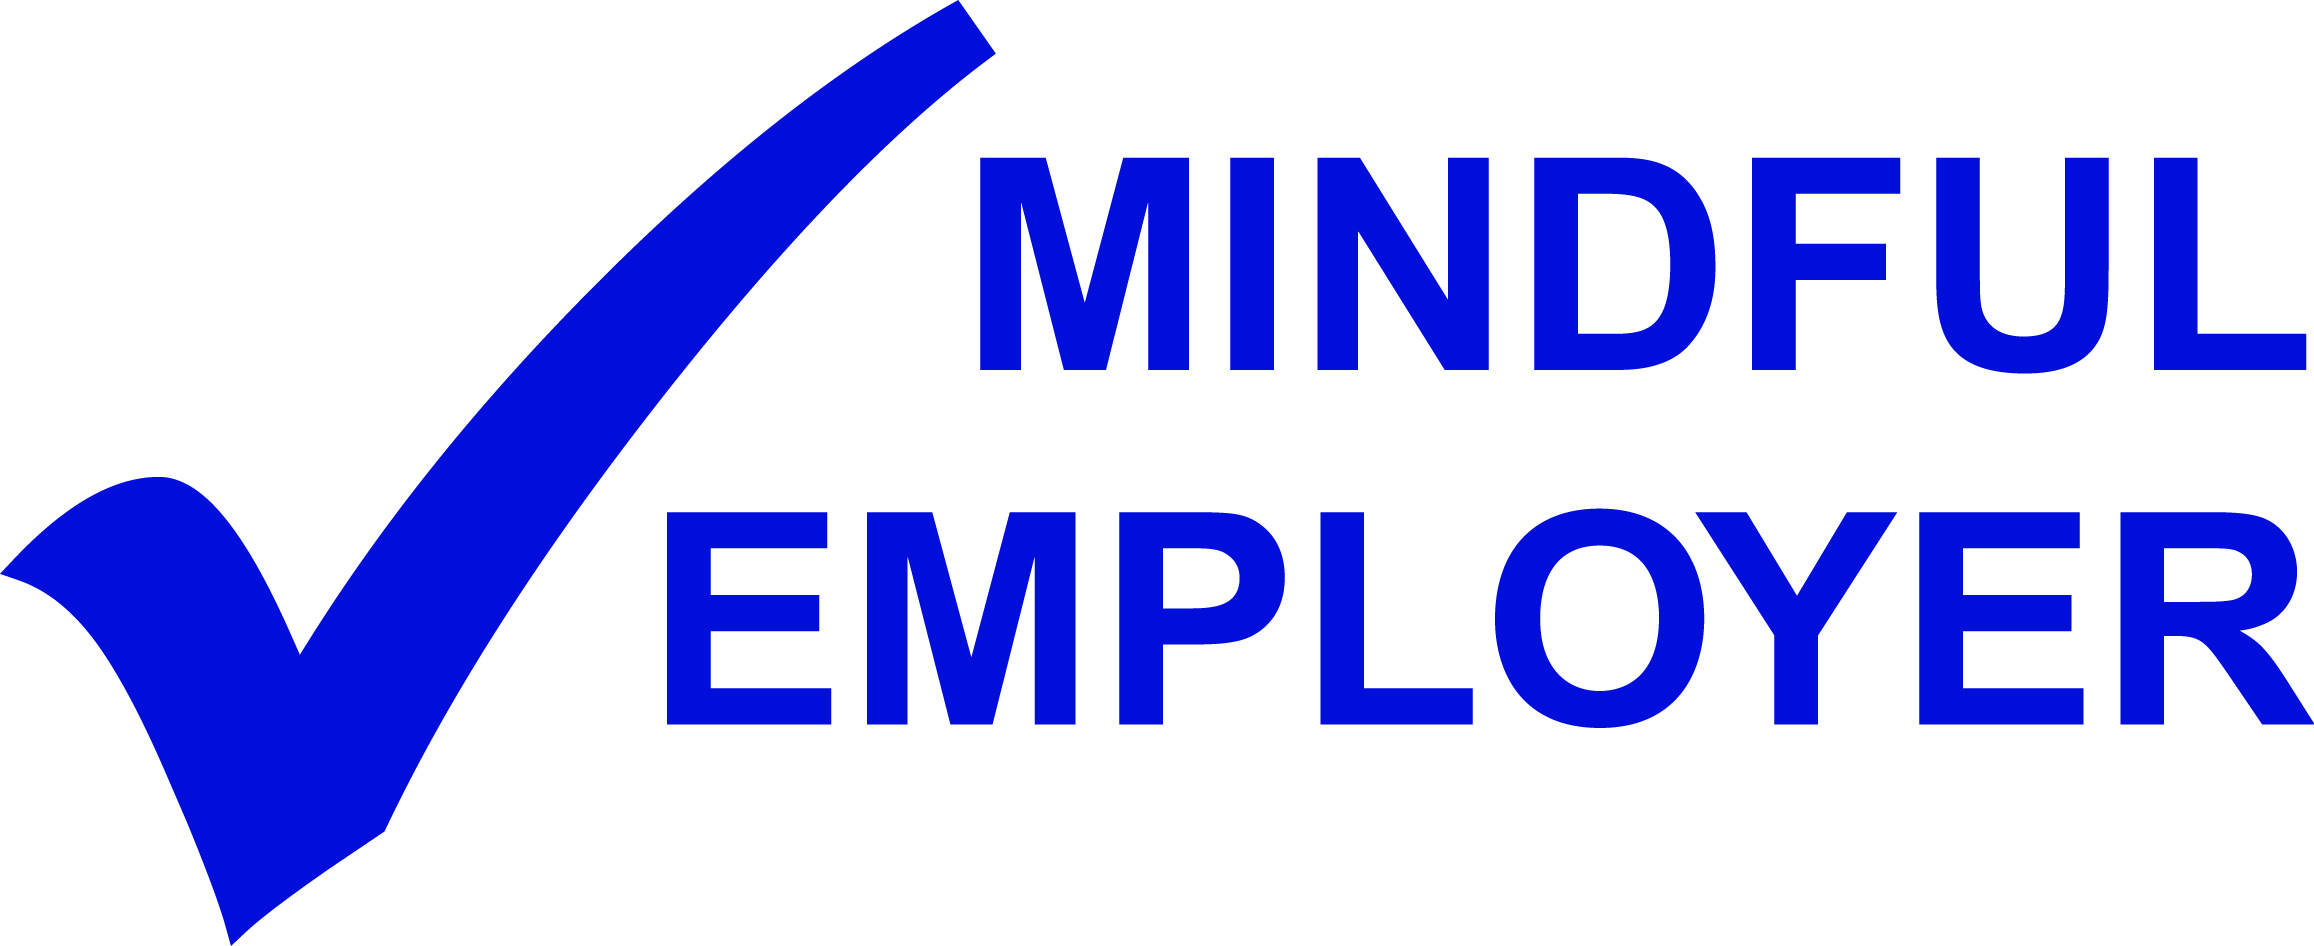 Mindful Employer logo blue